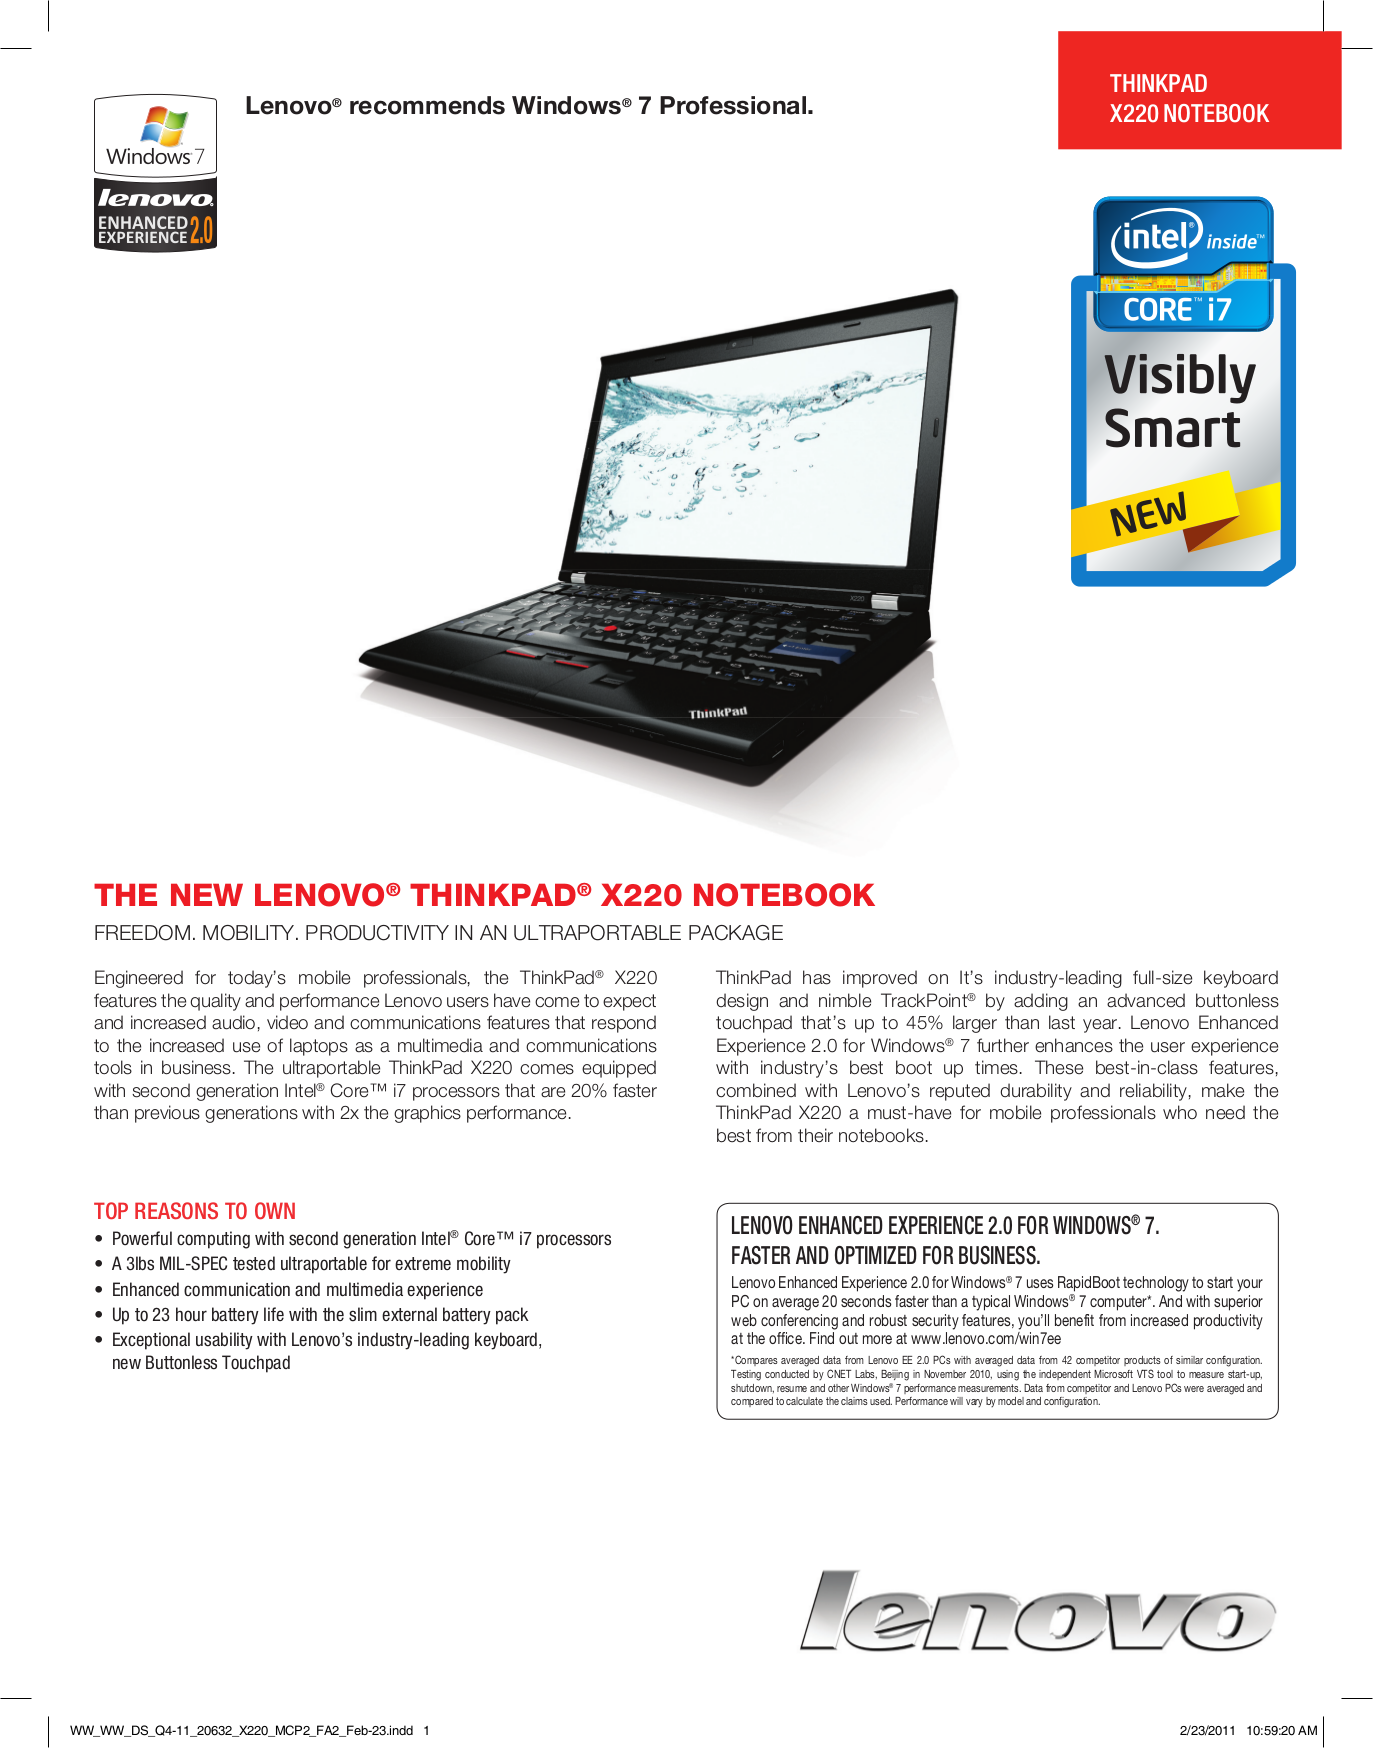 lenovo marketing communication tools Check out marketing manager profiles at lenovo, job listings & salaries review & learn skills to be a marketing manager.